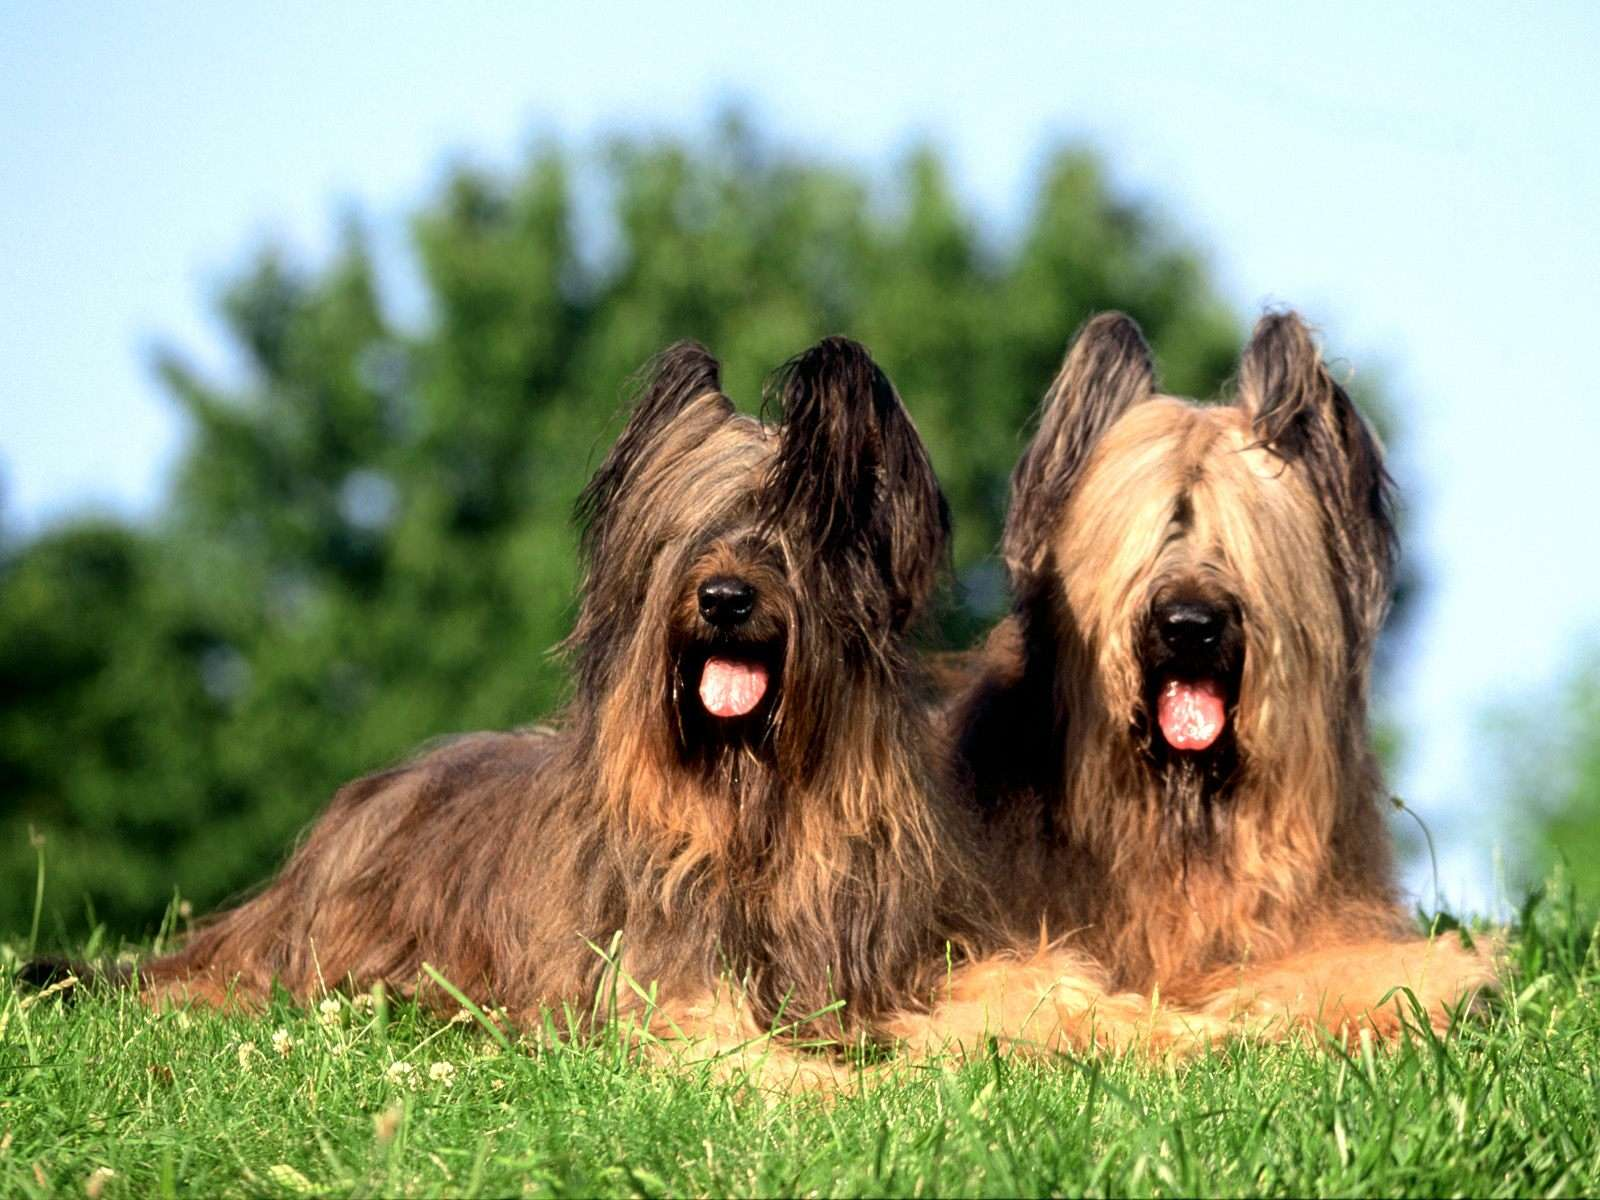 Couple of Briard dogs wallpaper